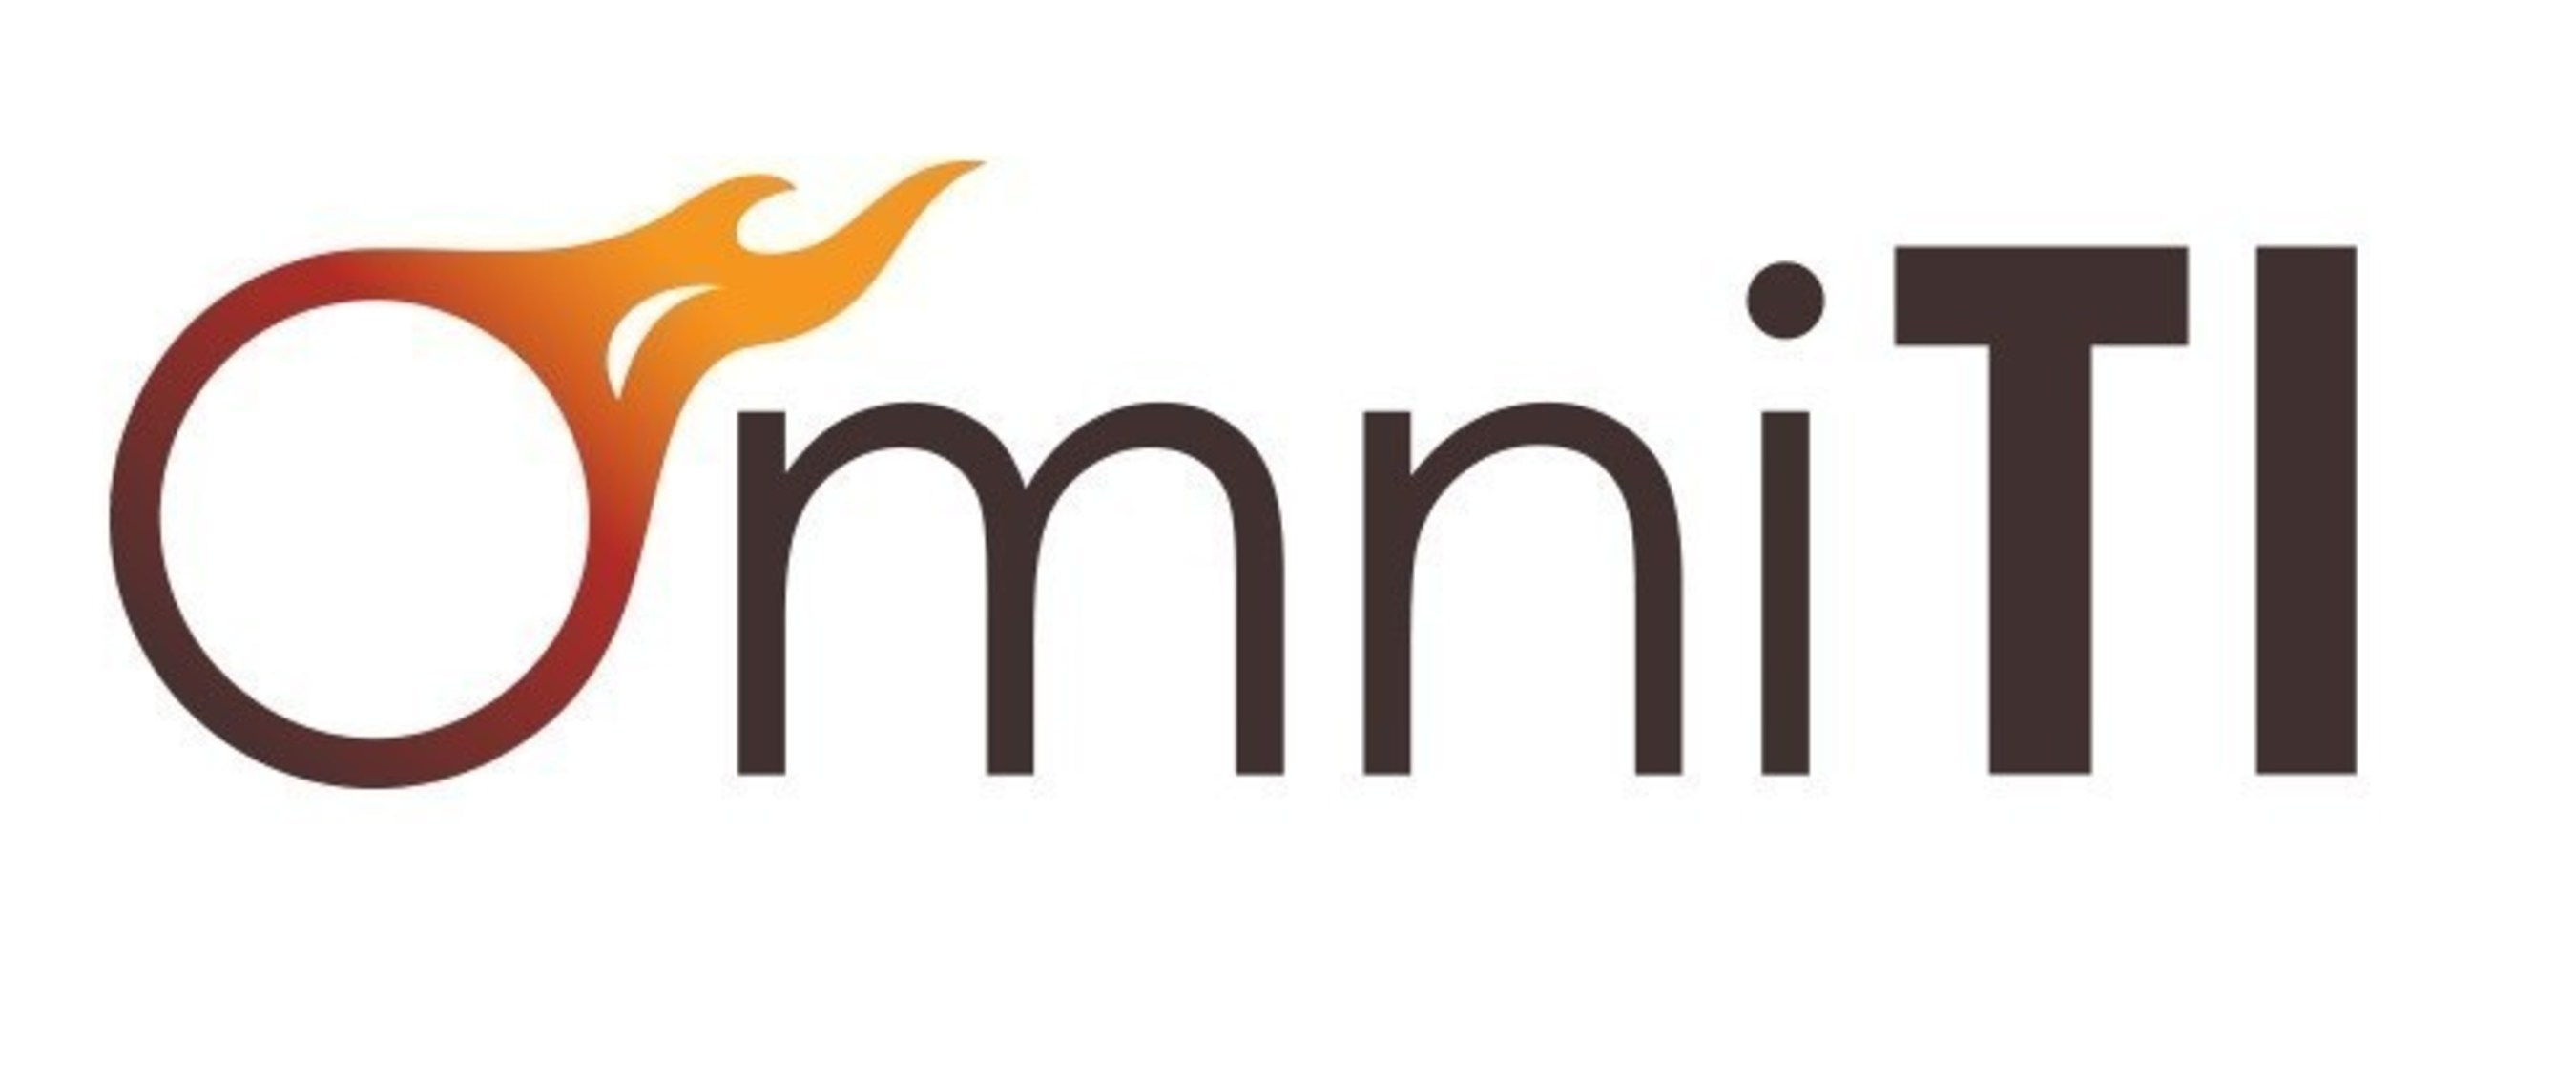 For companies experiencing issues associated with growth and scalability of their customer-facing websites, OmniTI is the leading Web Scalability and Performance provider using a cross-disciplinary approach to achieve unparalleled levels of web and database performance to enable revenue growth, outstanding customer experience, underlying infrastructure reliability and faster time-to-value.